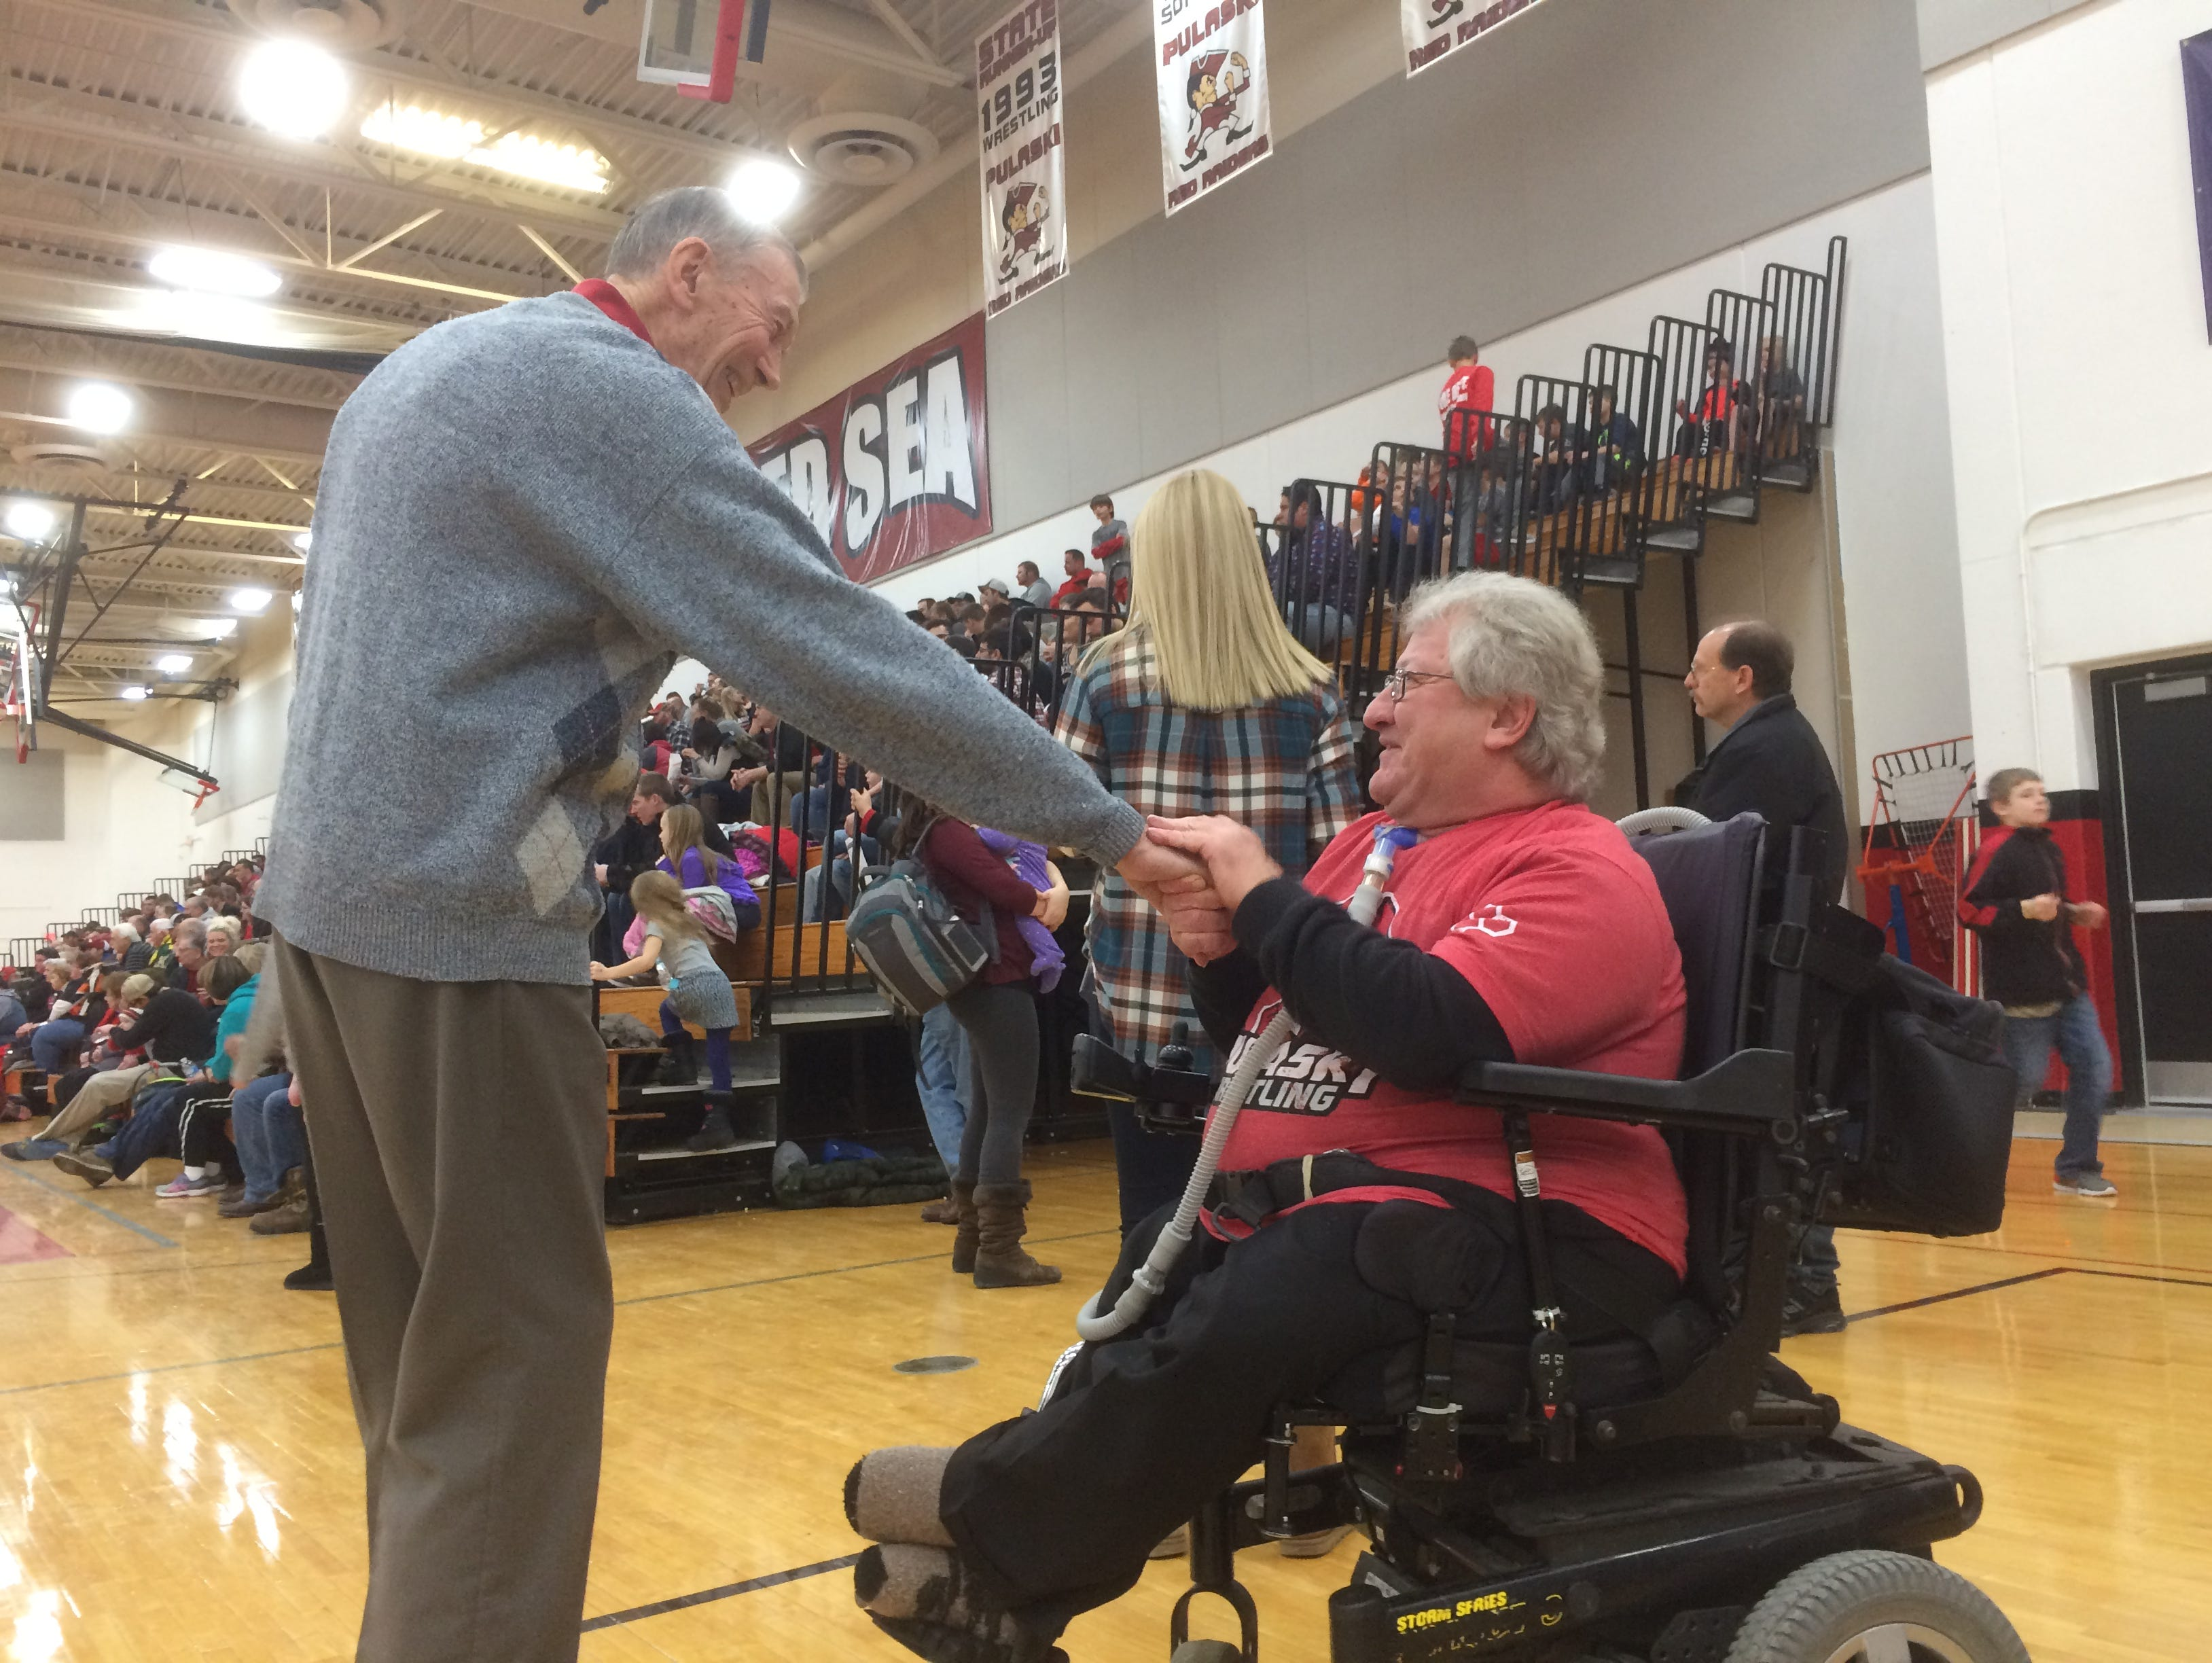 Gerald Lasecki, right, is greeted by Emil Ripley last Thursday at the Pulaski wrestling team's alumni night. Lasecki was announced as the recipient for the National Wrestling Hall of Fame's Medal of Courage.